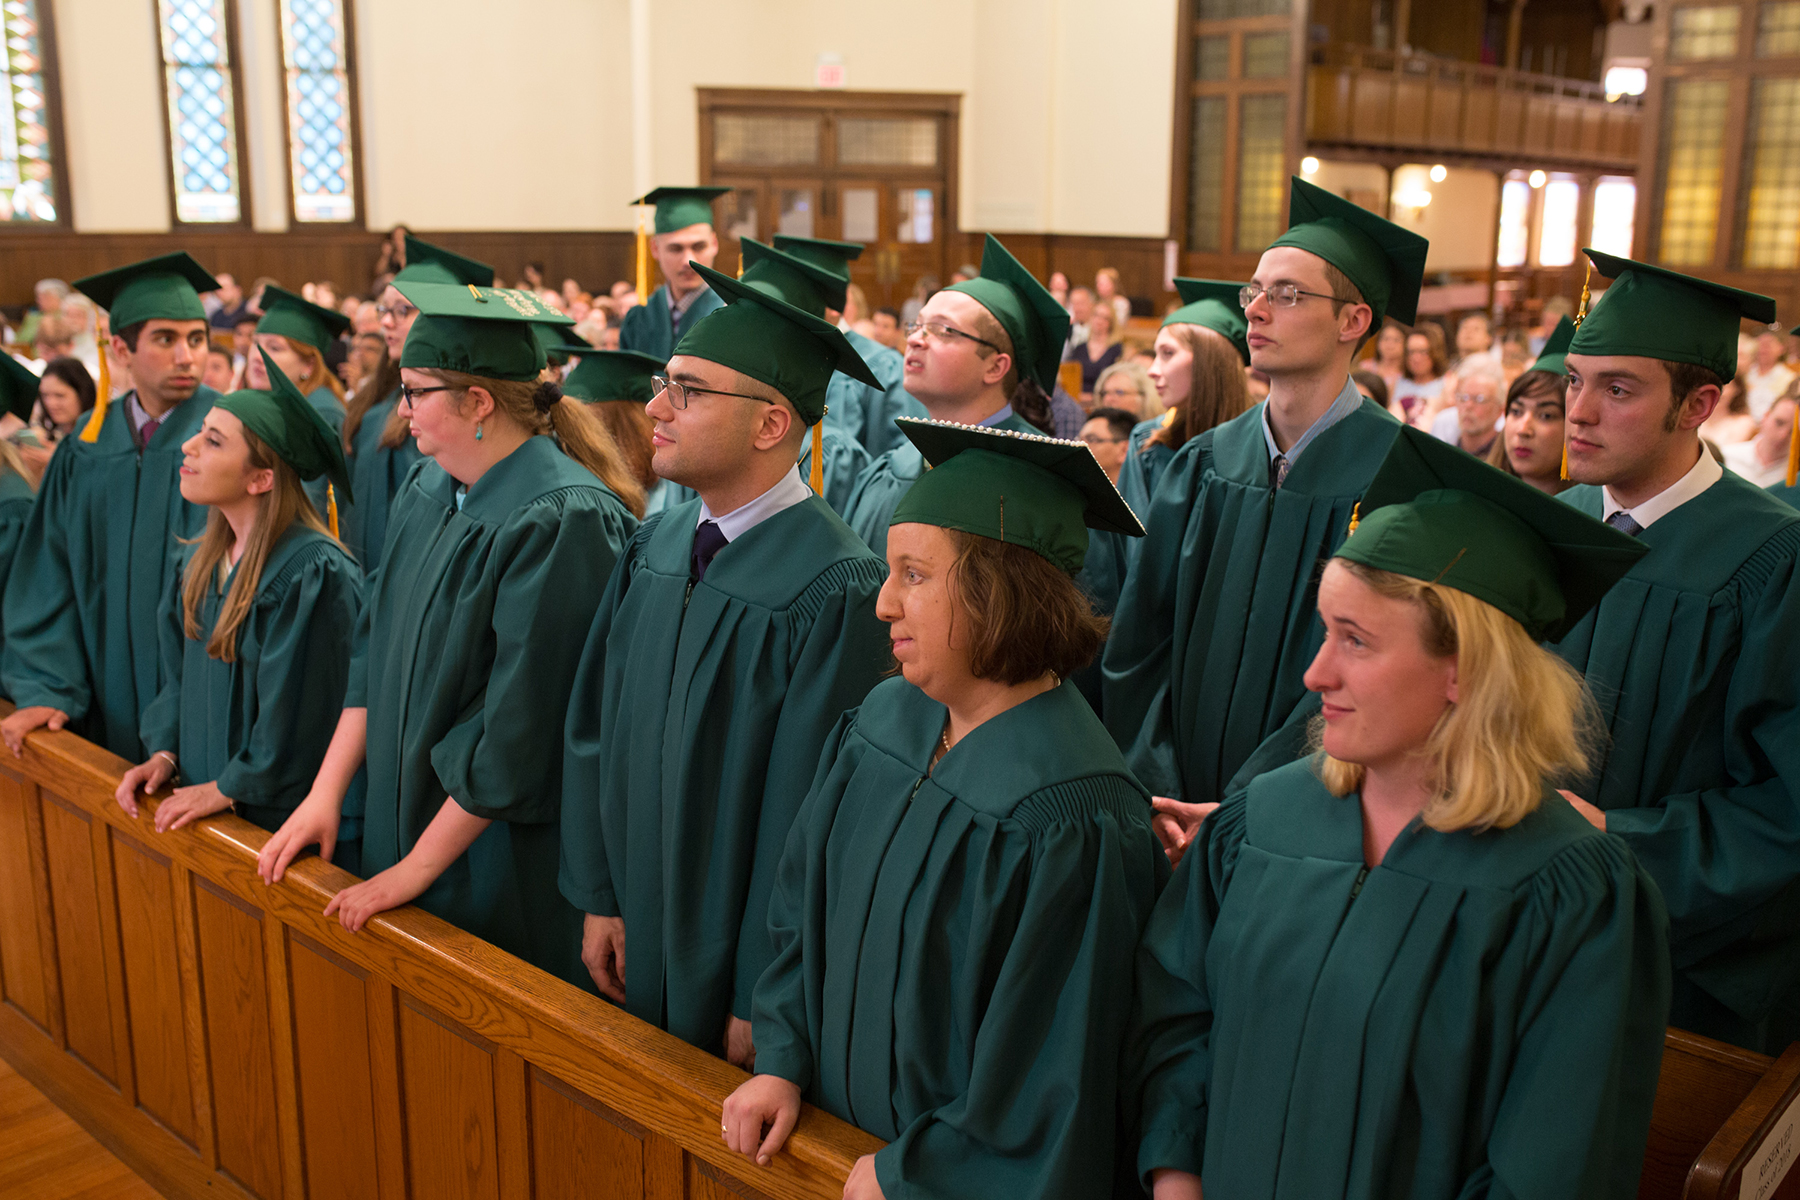 The Class of 2018 is pictured standing and listening during the graduation ceremony.